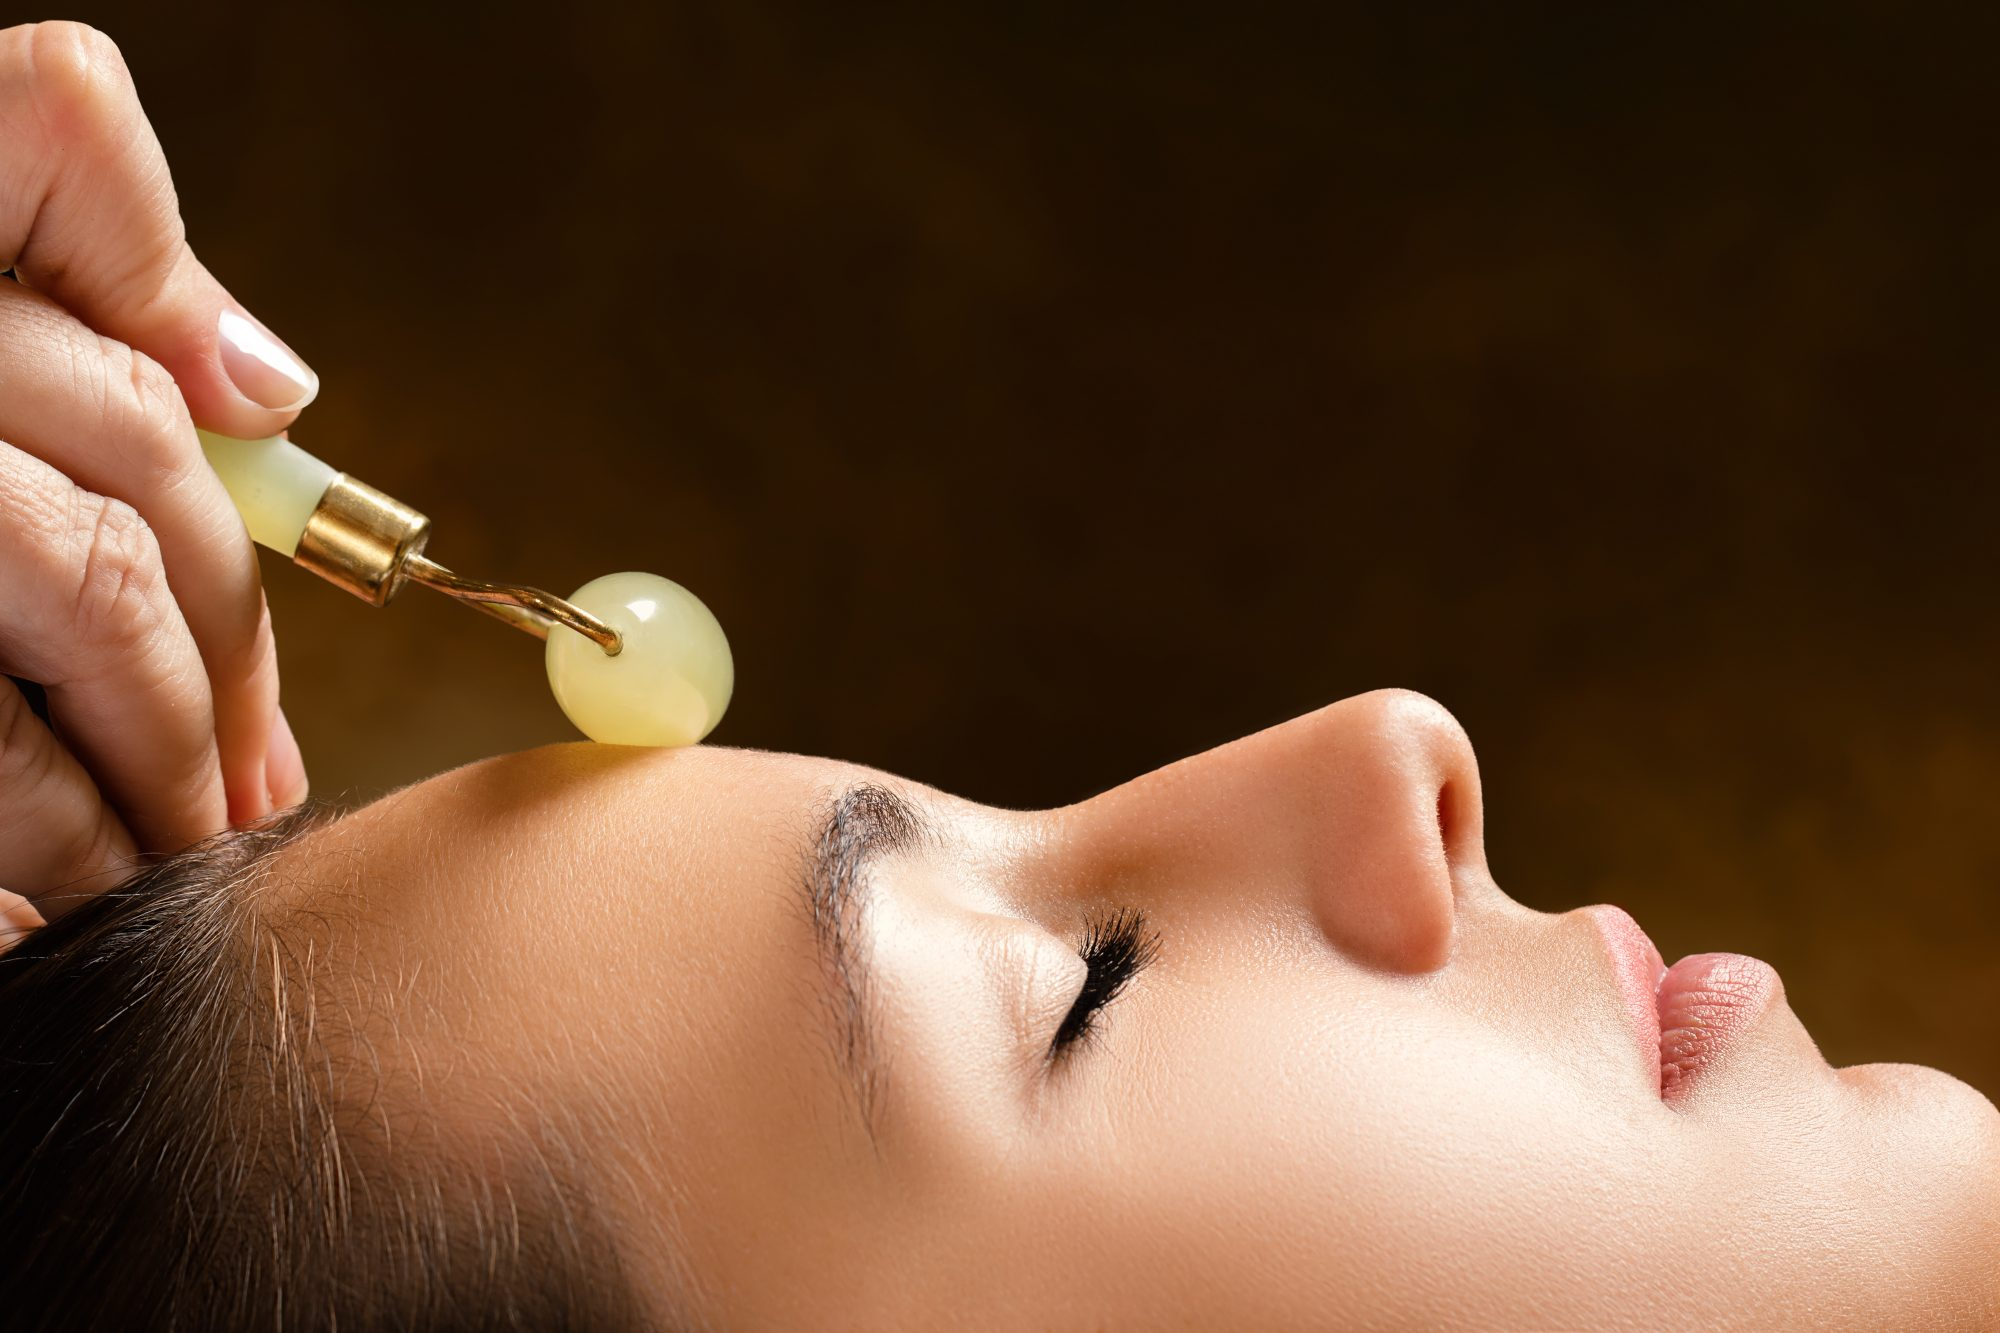 A Woman Using a Jade Roller on Her Face